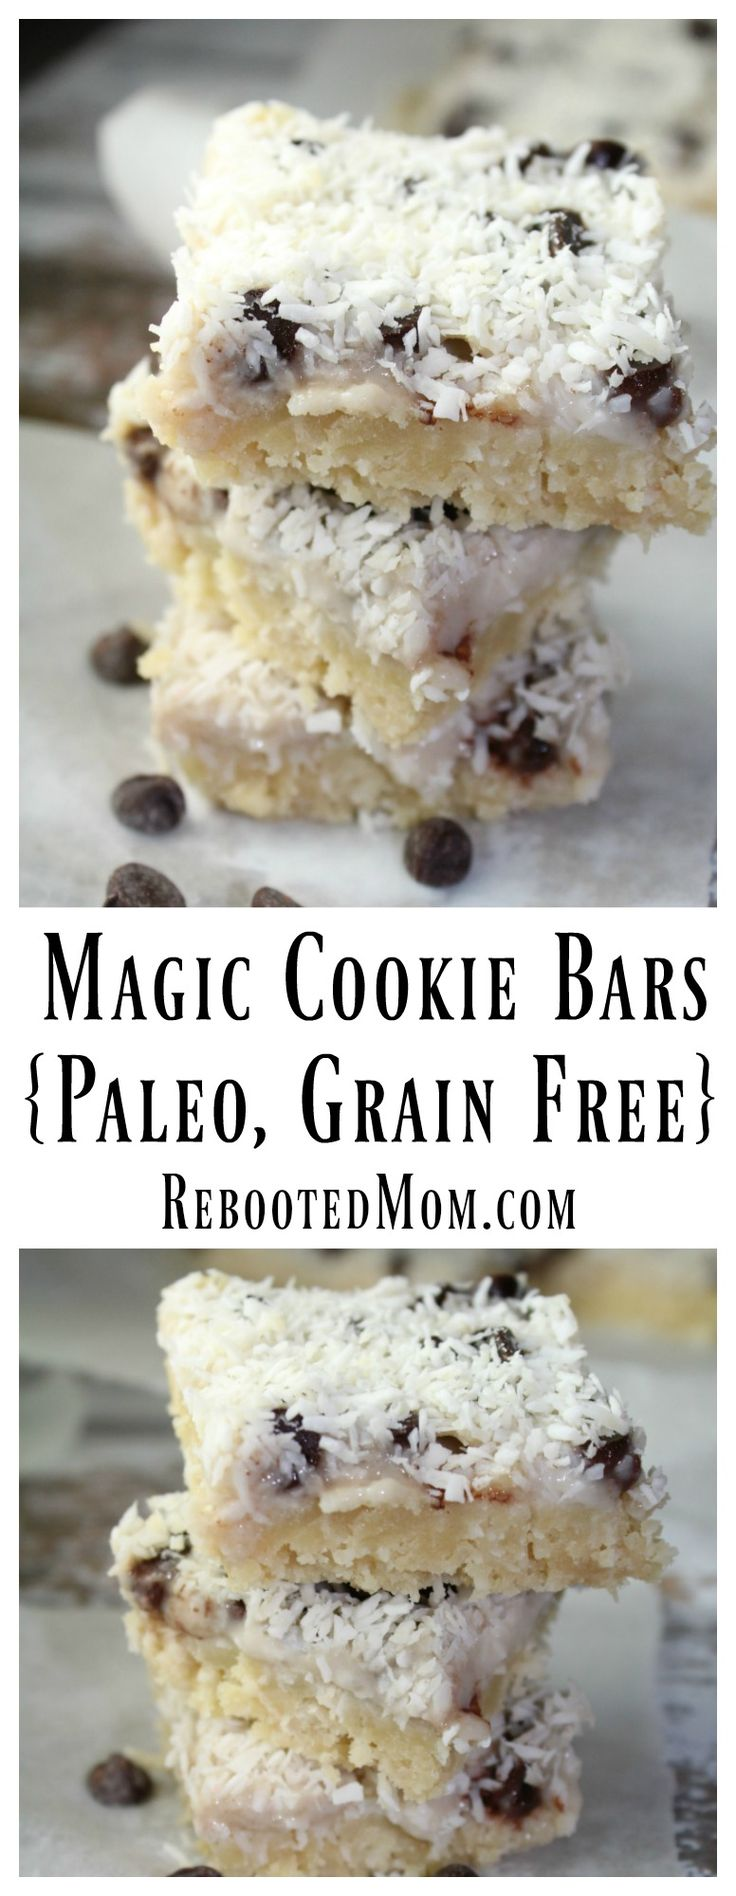 A paleo version of the magic cookie bars, that combines an almond flour crust with a coconut filling laced with chocolate chips and coconut to create a delicious and rich cookie bar that's Paleo and grain-free.